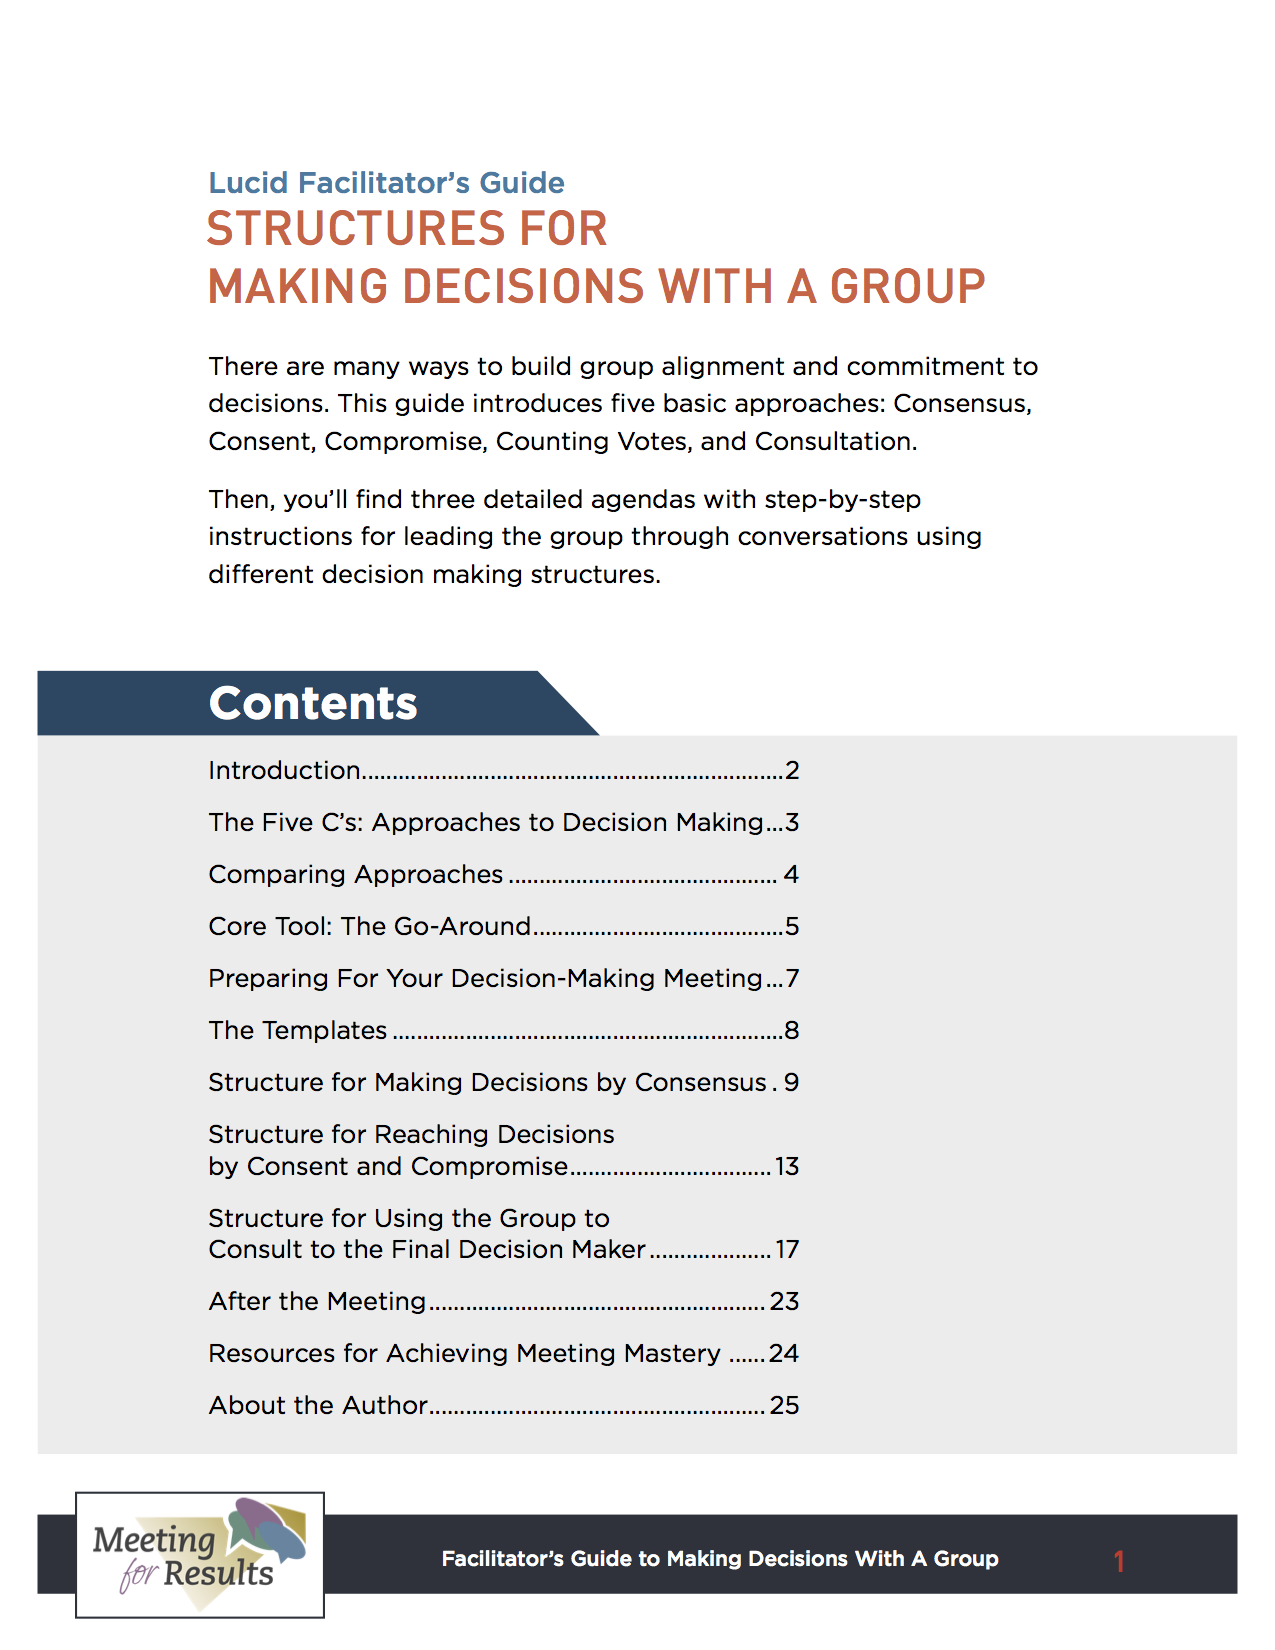 Structures-Decision-Making-Facilitators-Guide.png